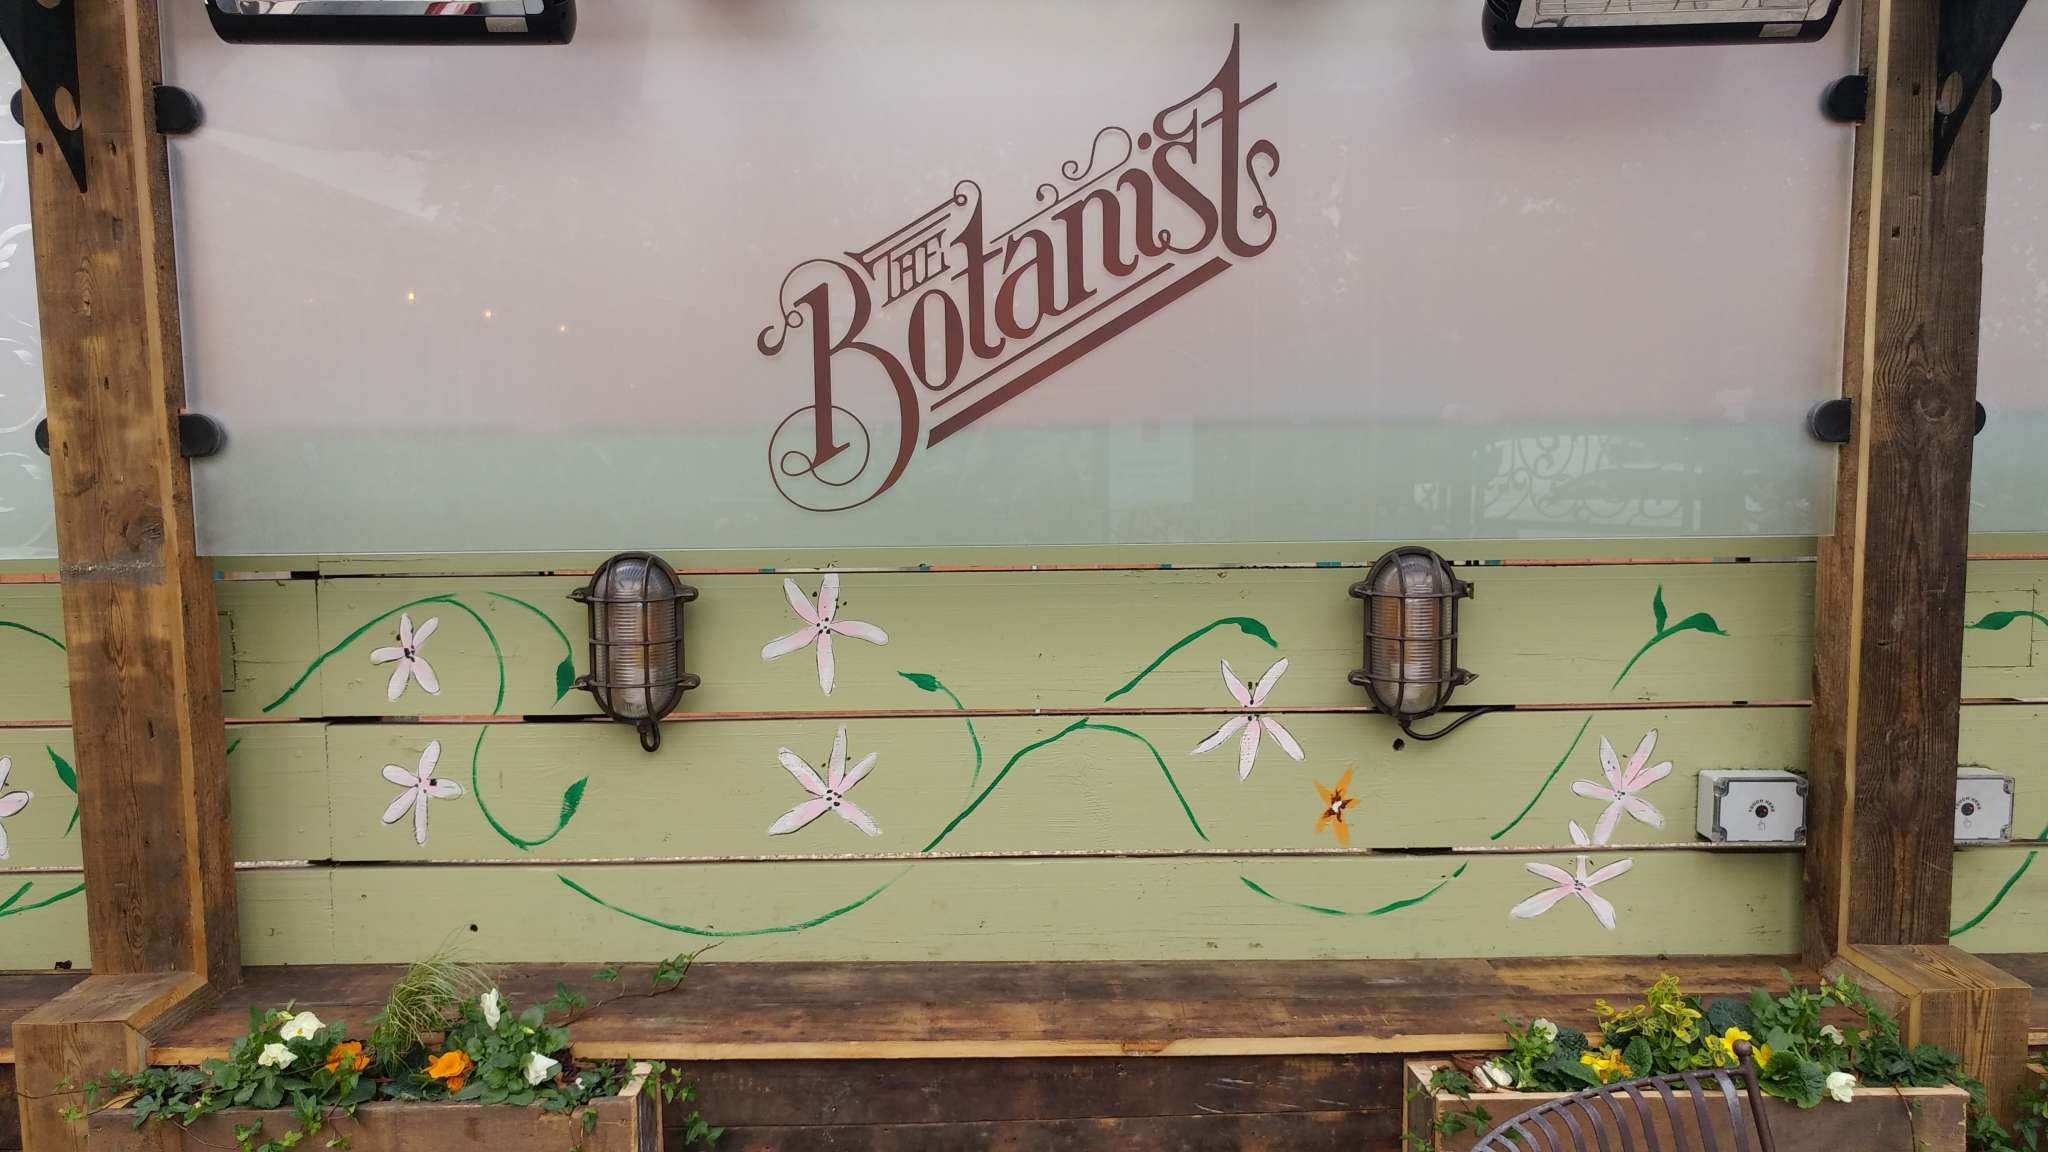 BUSINESS BLOOMS FOR THE BOTANIST IN WEST BRIDGFORD, NOTTINGHAM